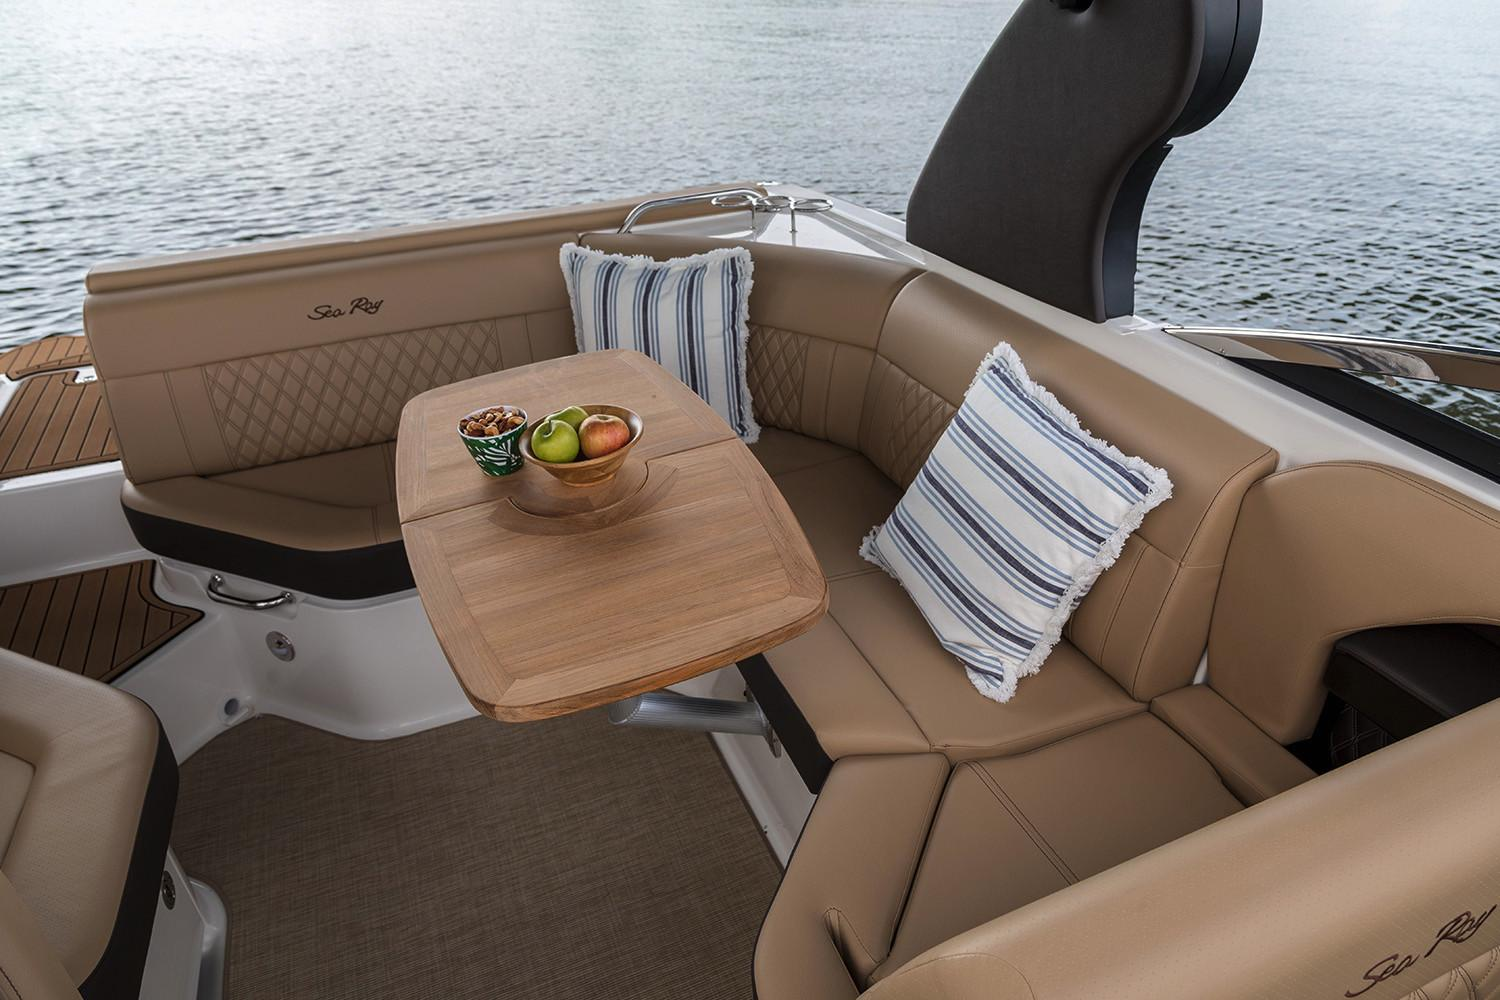 2020 Sea Ray SLX 230 in Holiday, Florida - Photo 10